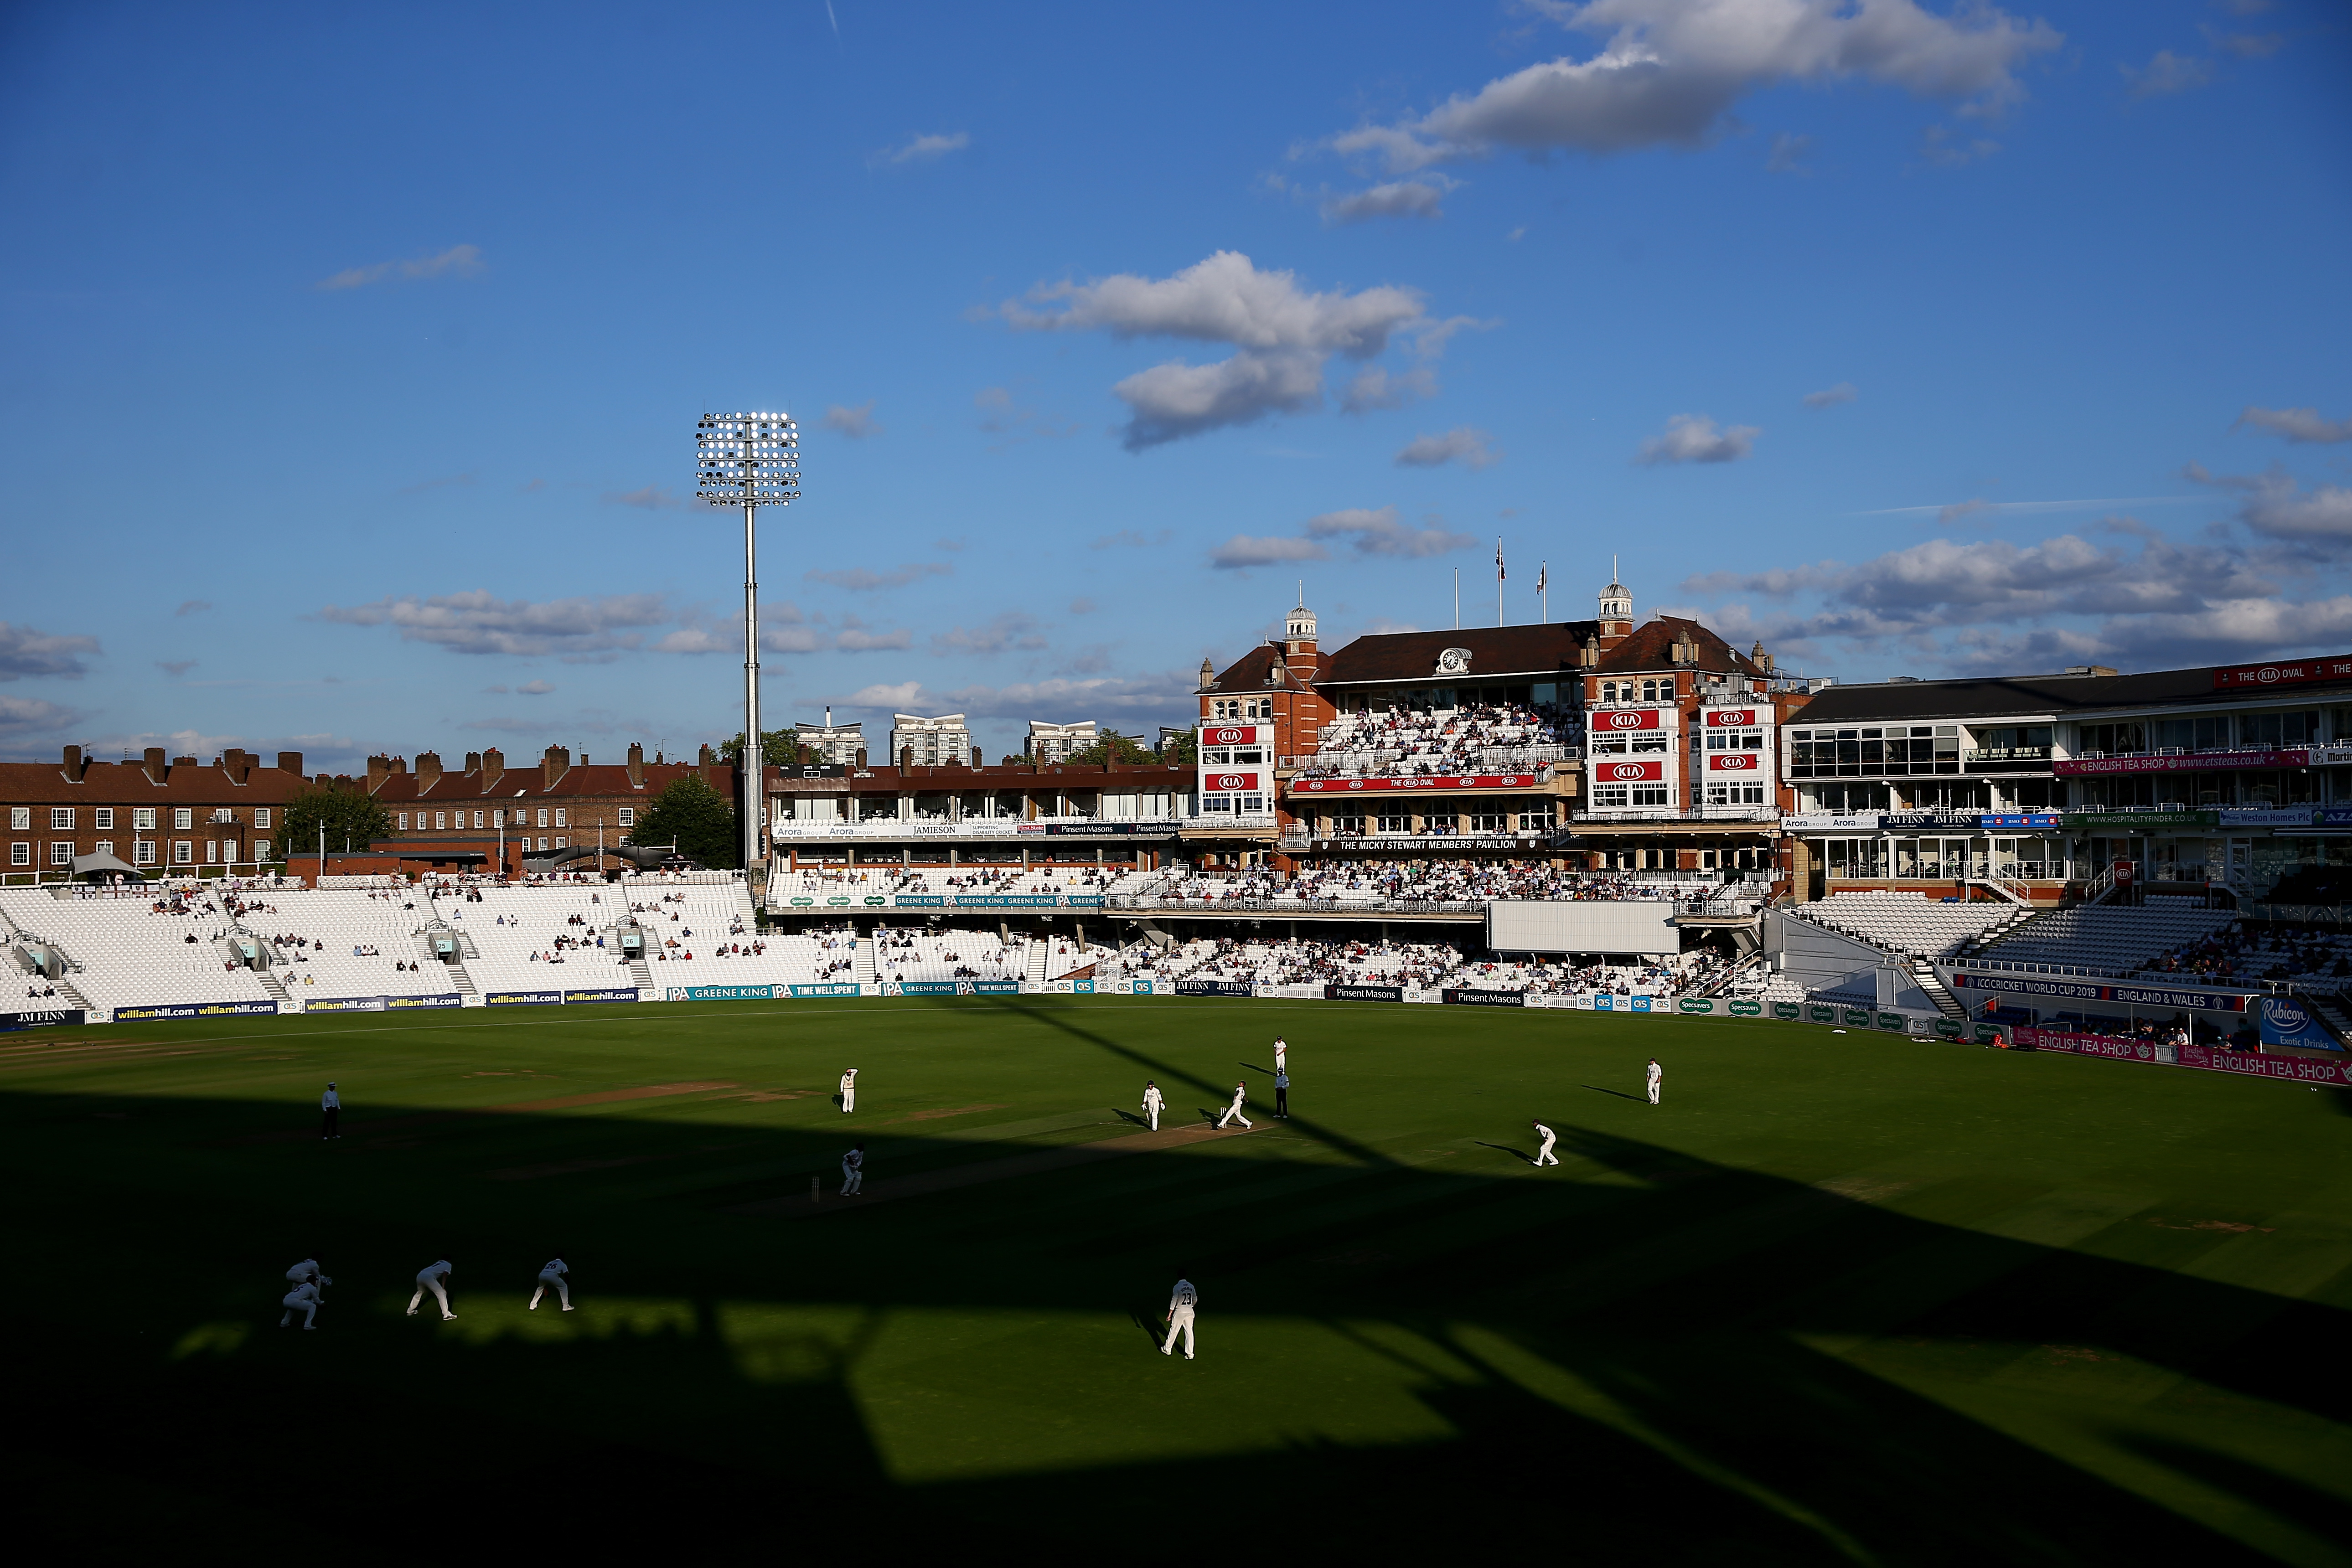 England and Wales Cricket Board (ECB) - The Official Website